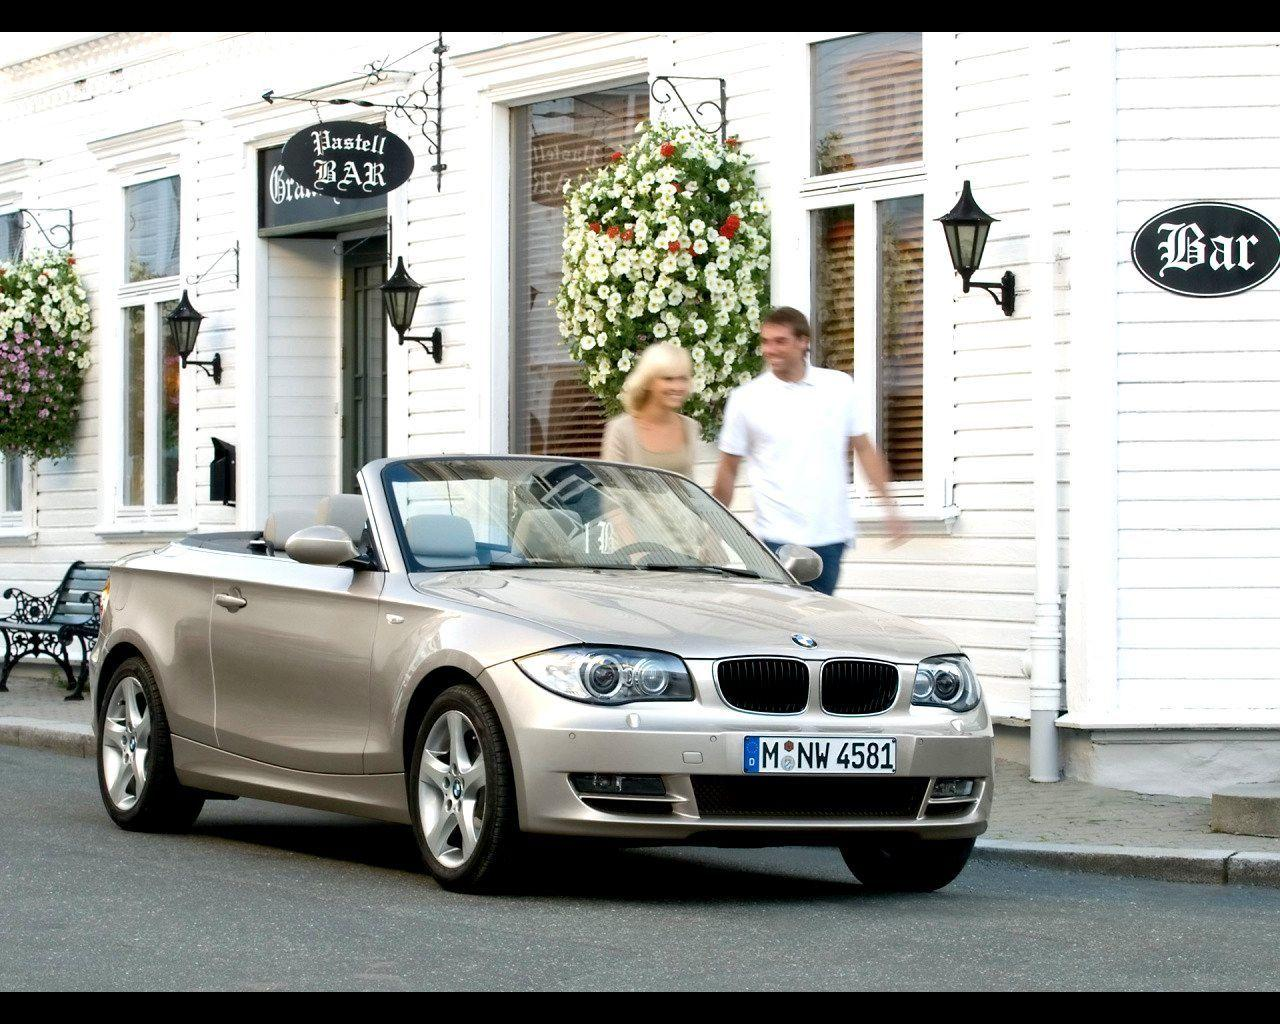 2008 BMW 1 Series Convertible Wallpaper 15 - 1280x1024